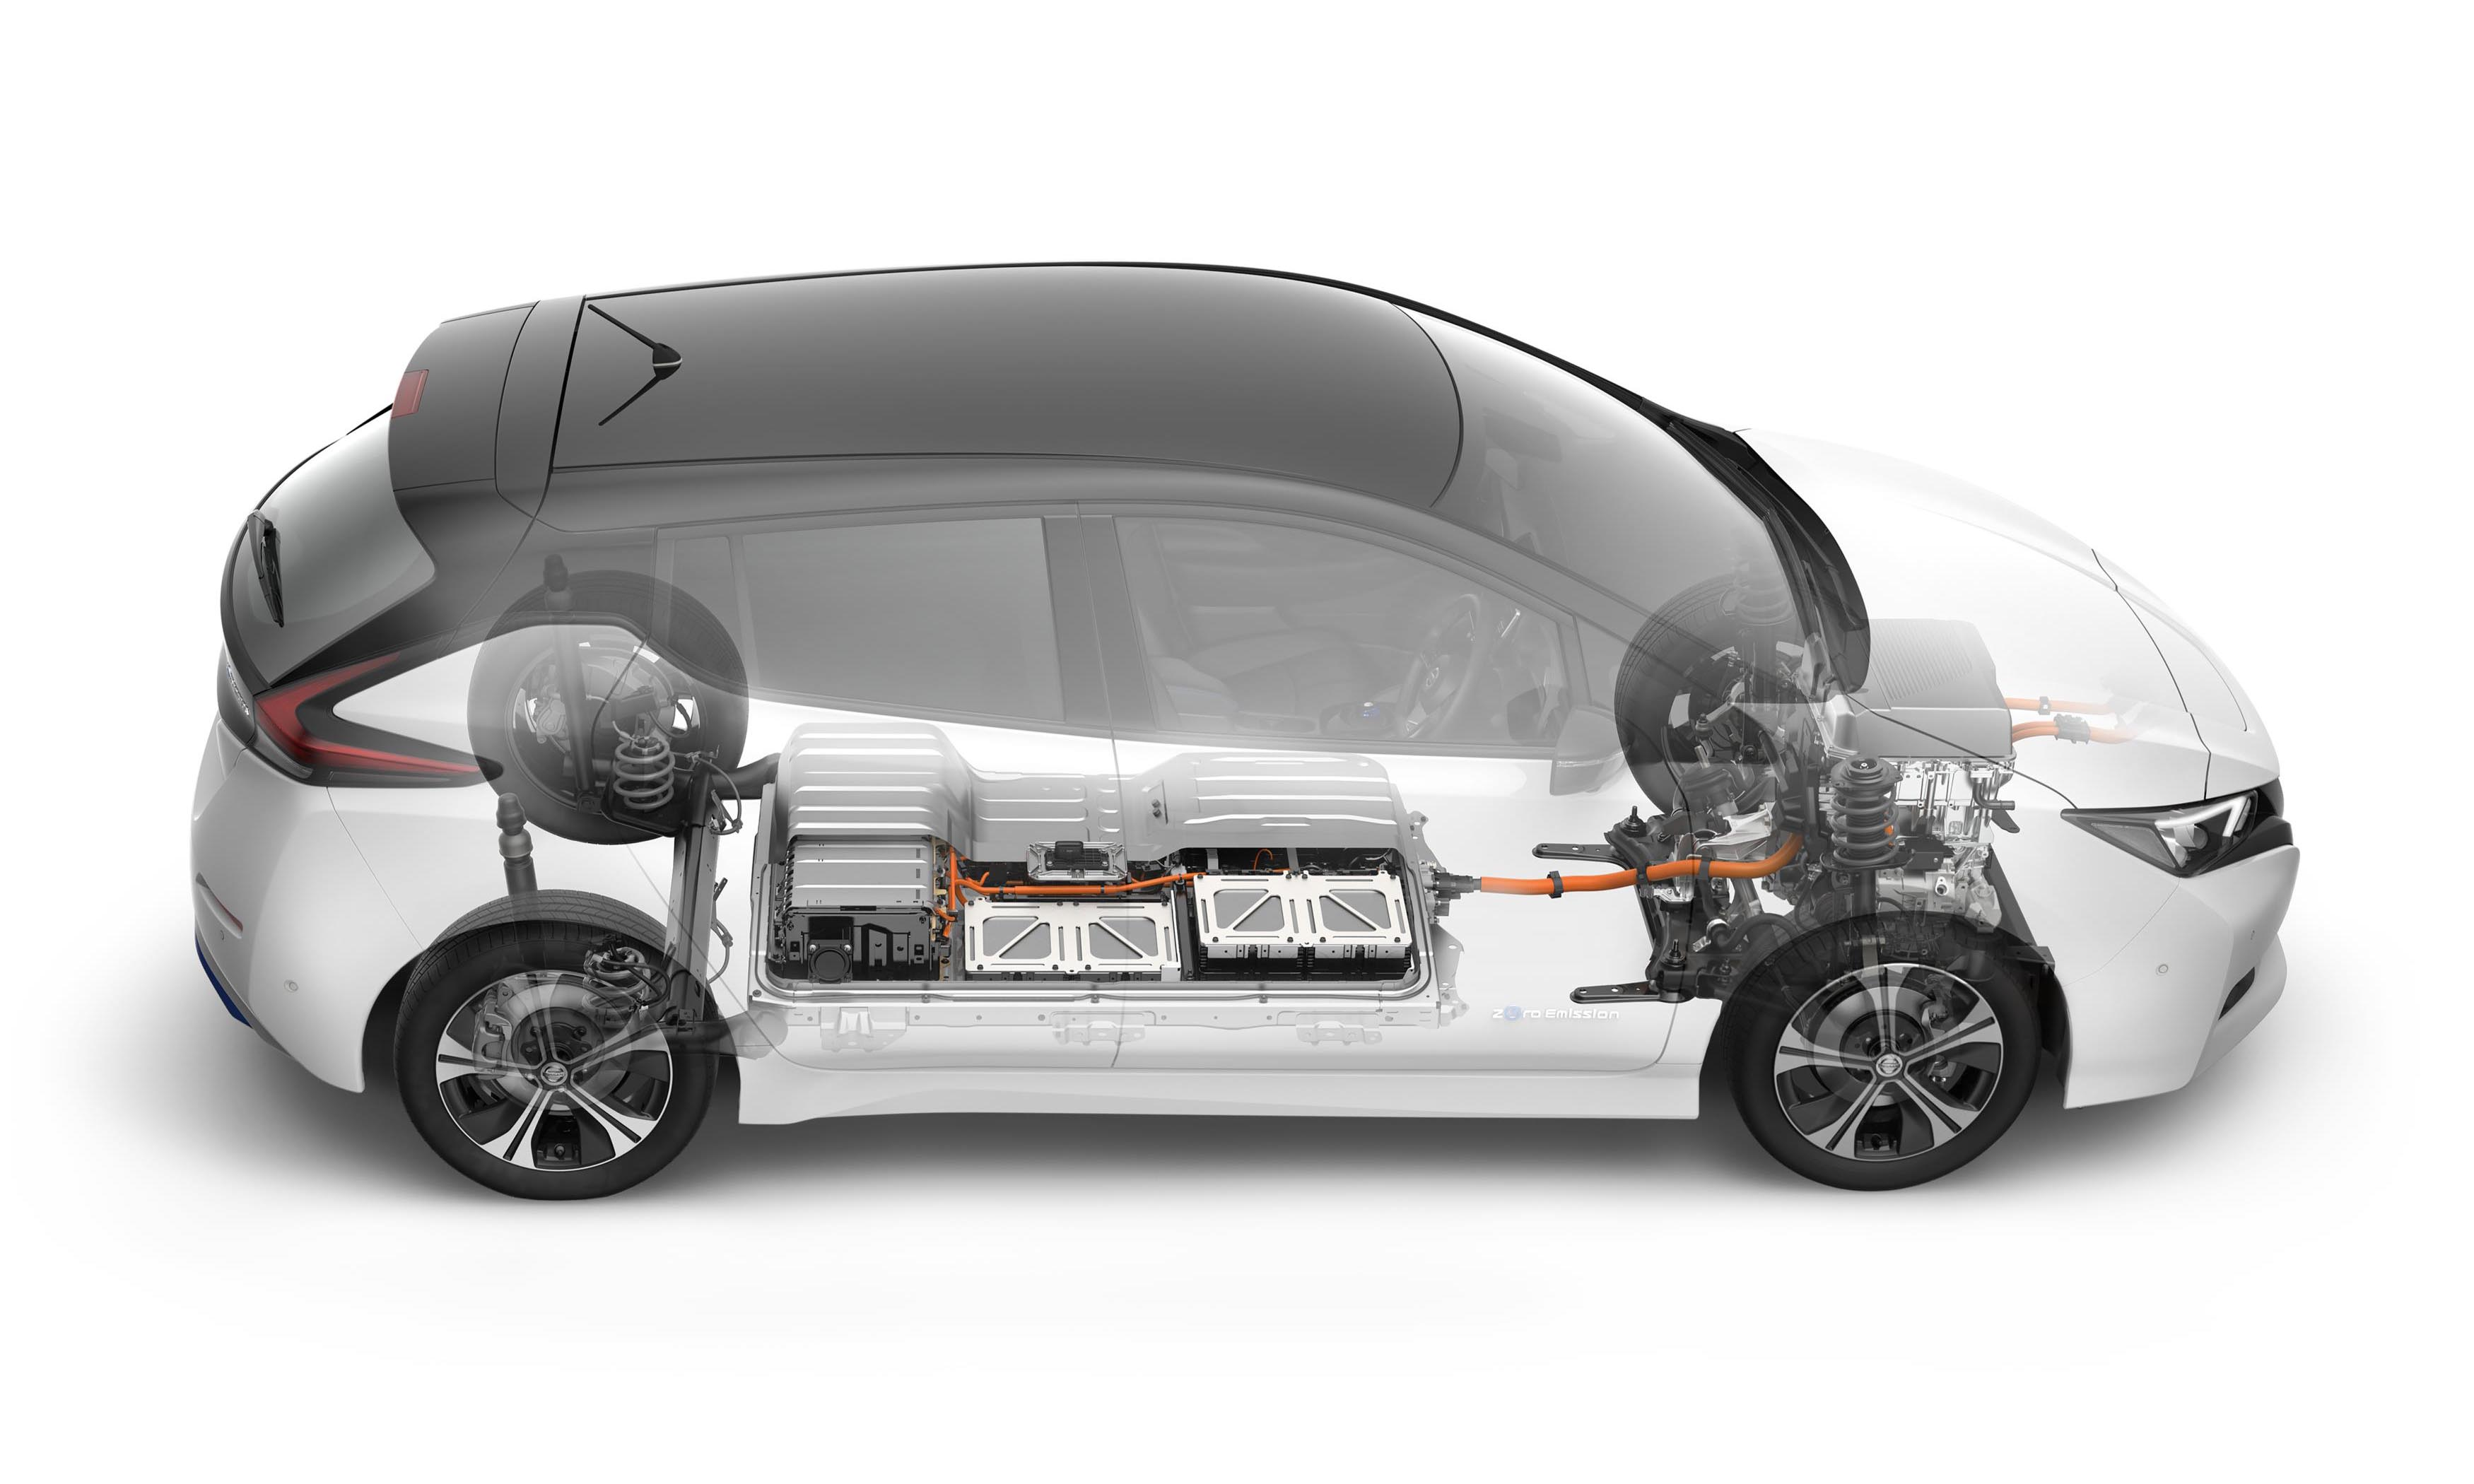 ... See Underneath The Skin, The Higher Capacity LI Ion Battery Produces 40  KWh And